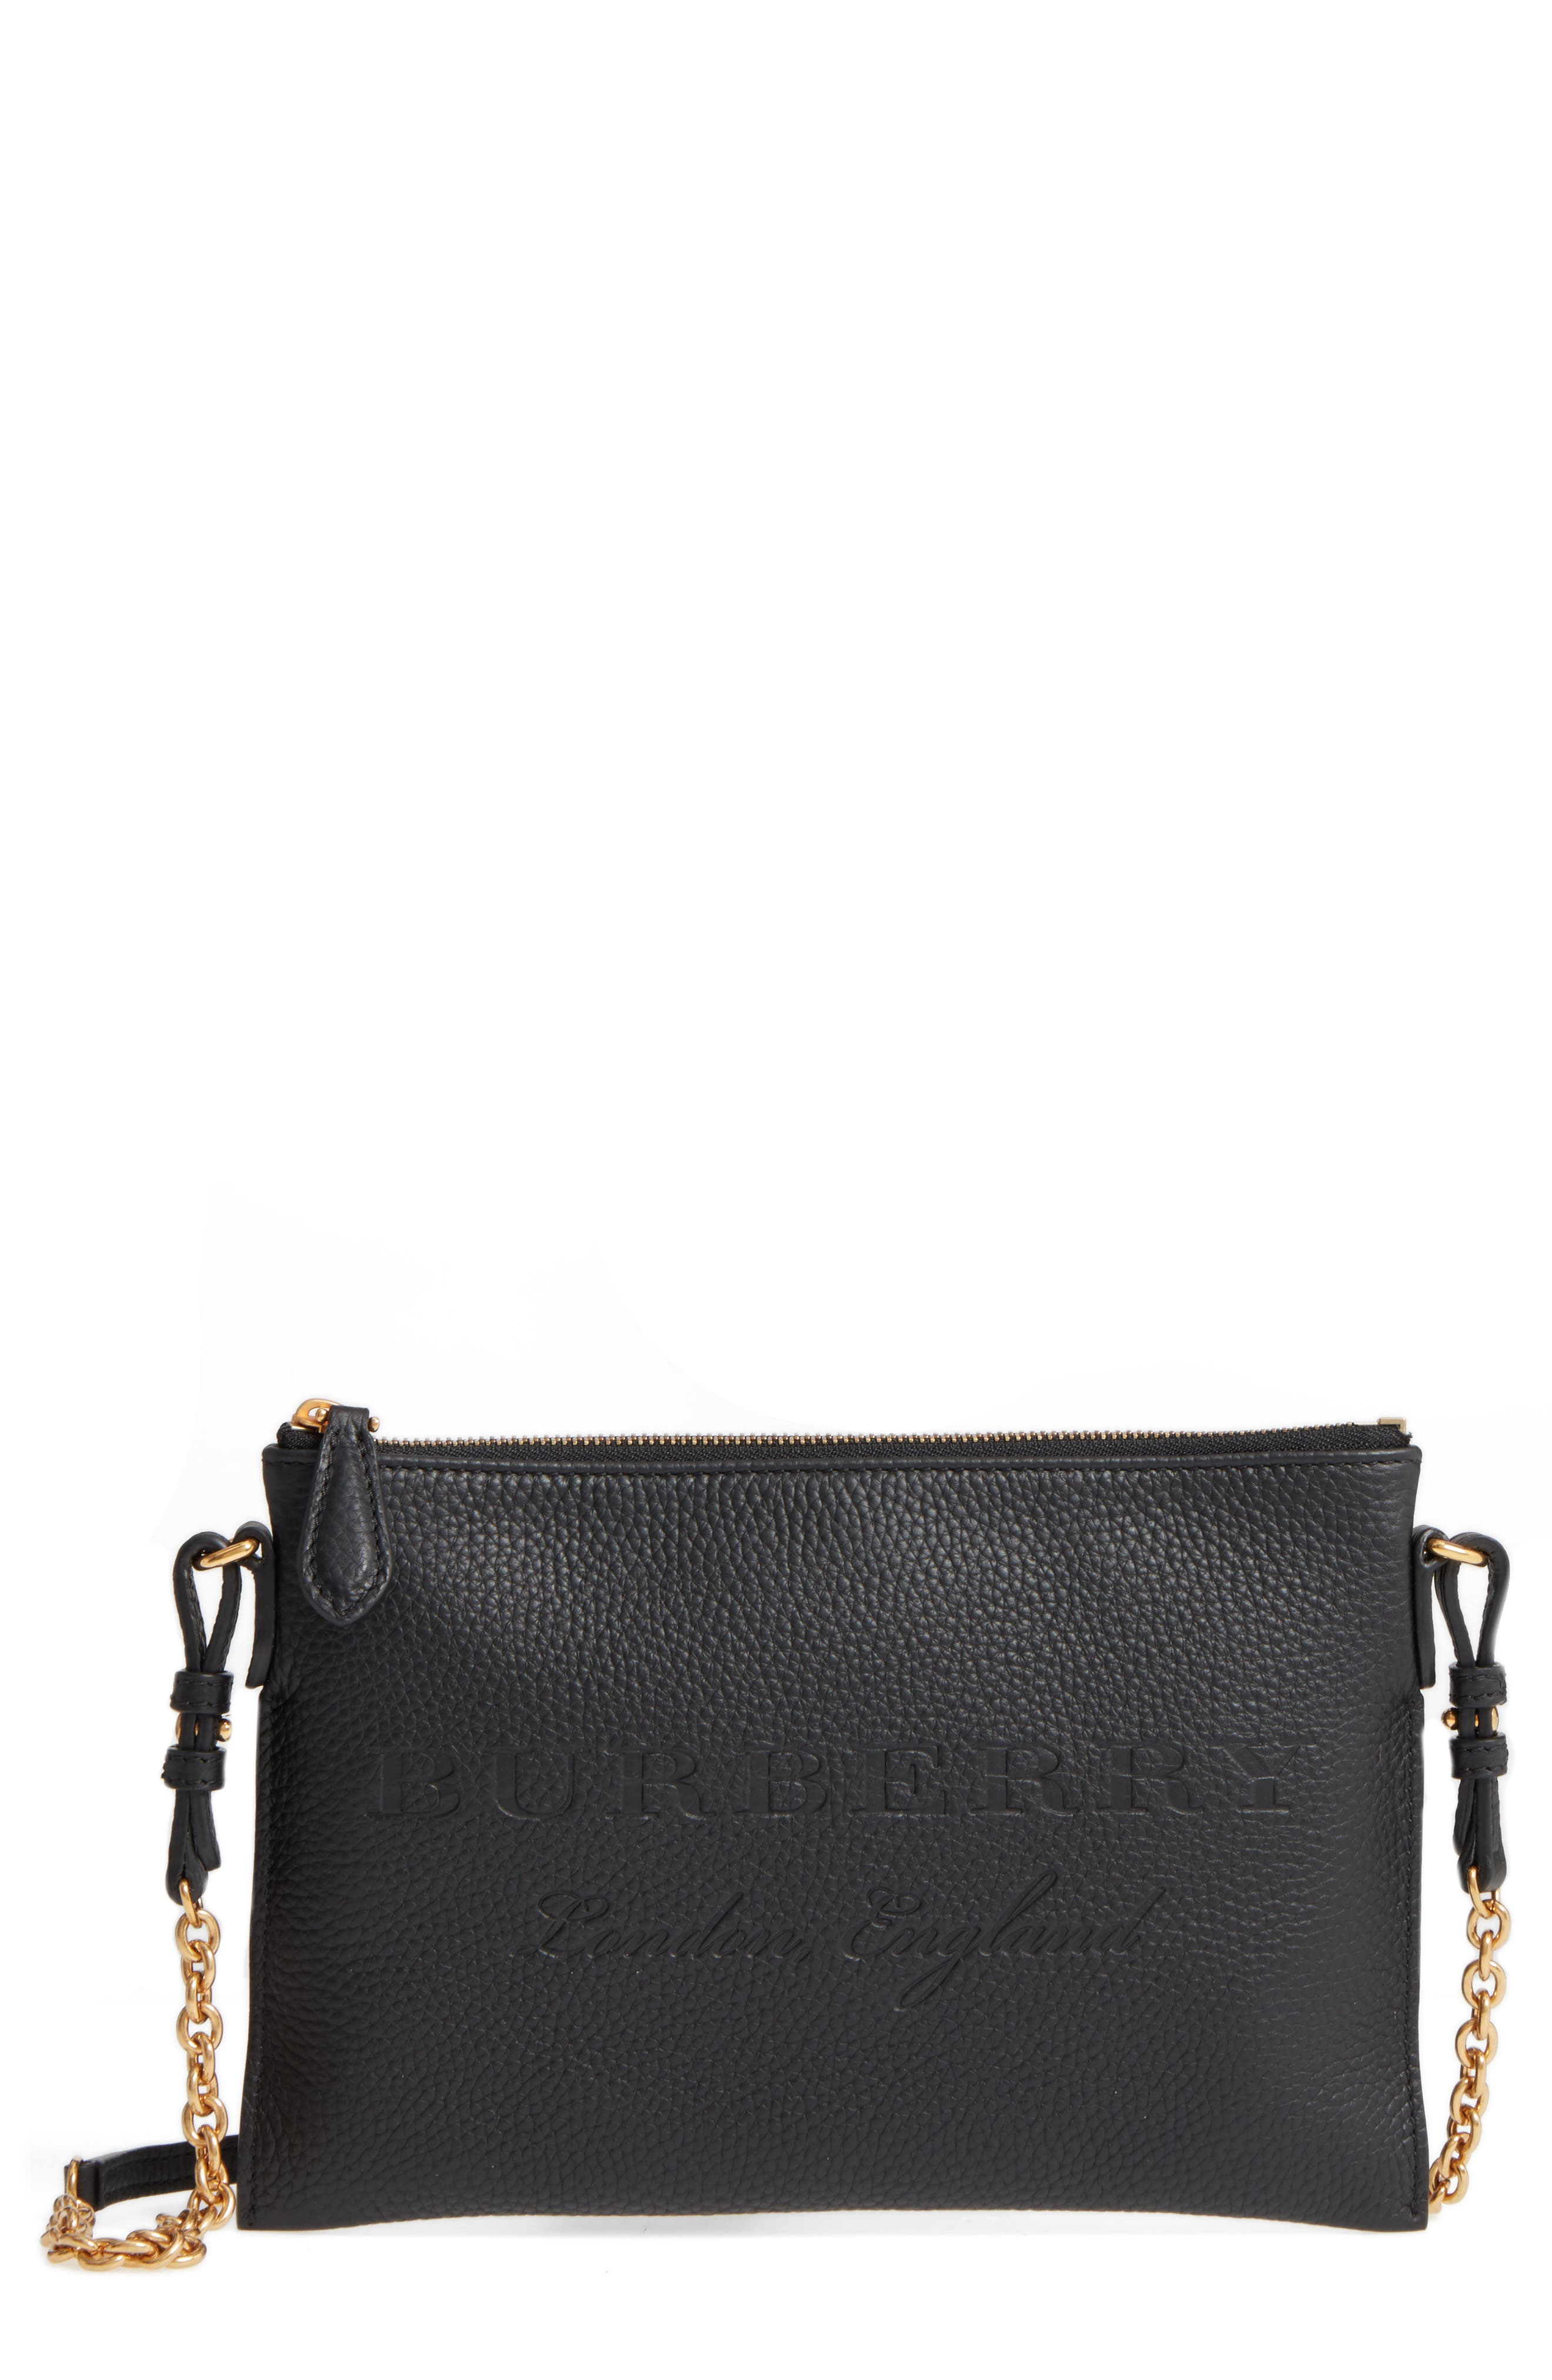 Burberry Burberry Mini D-Ring Leather Crossbody from Rue ...